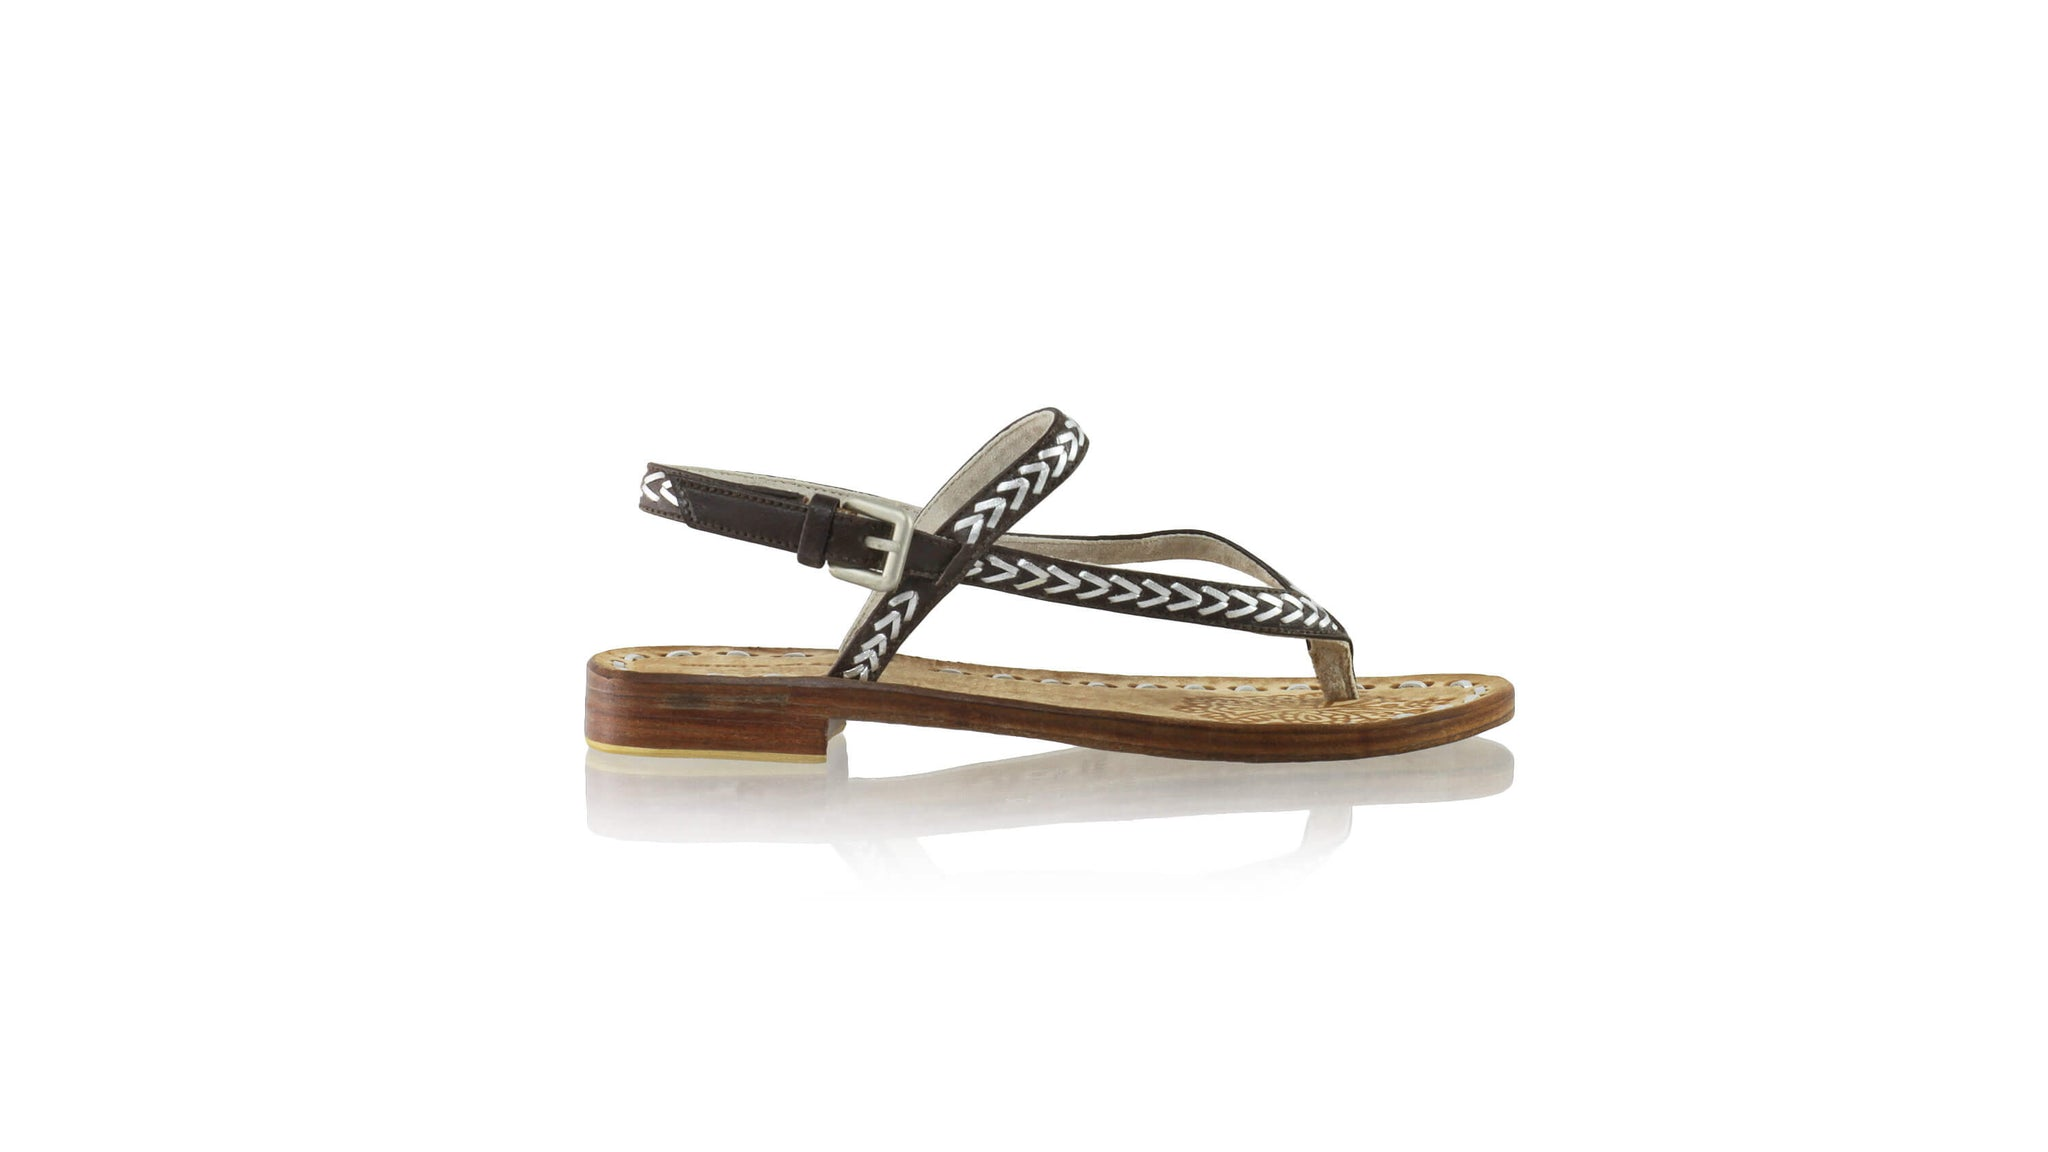 Leather-shoes-Papua 20mm Flat - Dark Brown & Silver-sandals flat-NILUH DJELANTIK-NILUH DJELANTIK